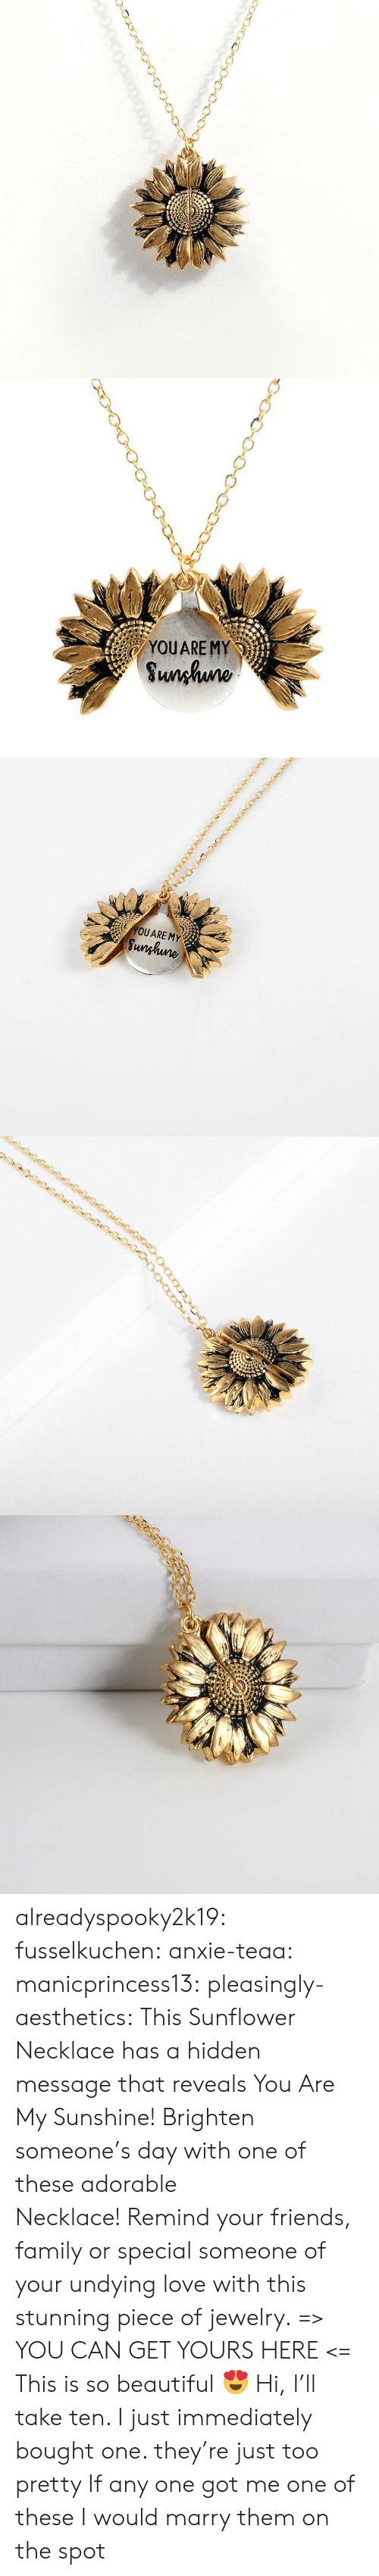 Beautiful, Family, and Friends: YOUARE MY  Sunhuno   YOUARE MY  Sunghune alreadyspooky2k19:  fusselkuchen:  anxie-teaa:  manicprincess13:  pleasingly-aesthetics: This Sunflower Necklace has a hidden message that reveals You Are My Sunshine! Brighten someone's day with one of these adorable Necklace!Remind your friends, family or special someone of your undying love with this stunning piece of jewelry. => YOU CAN GET YOURS HERE <=   This is so beautiful 😍   Hi, I'll take ten.   I just immediately bought one. they're just too pretty   If any one got me one of these I would marry them on the spot